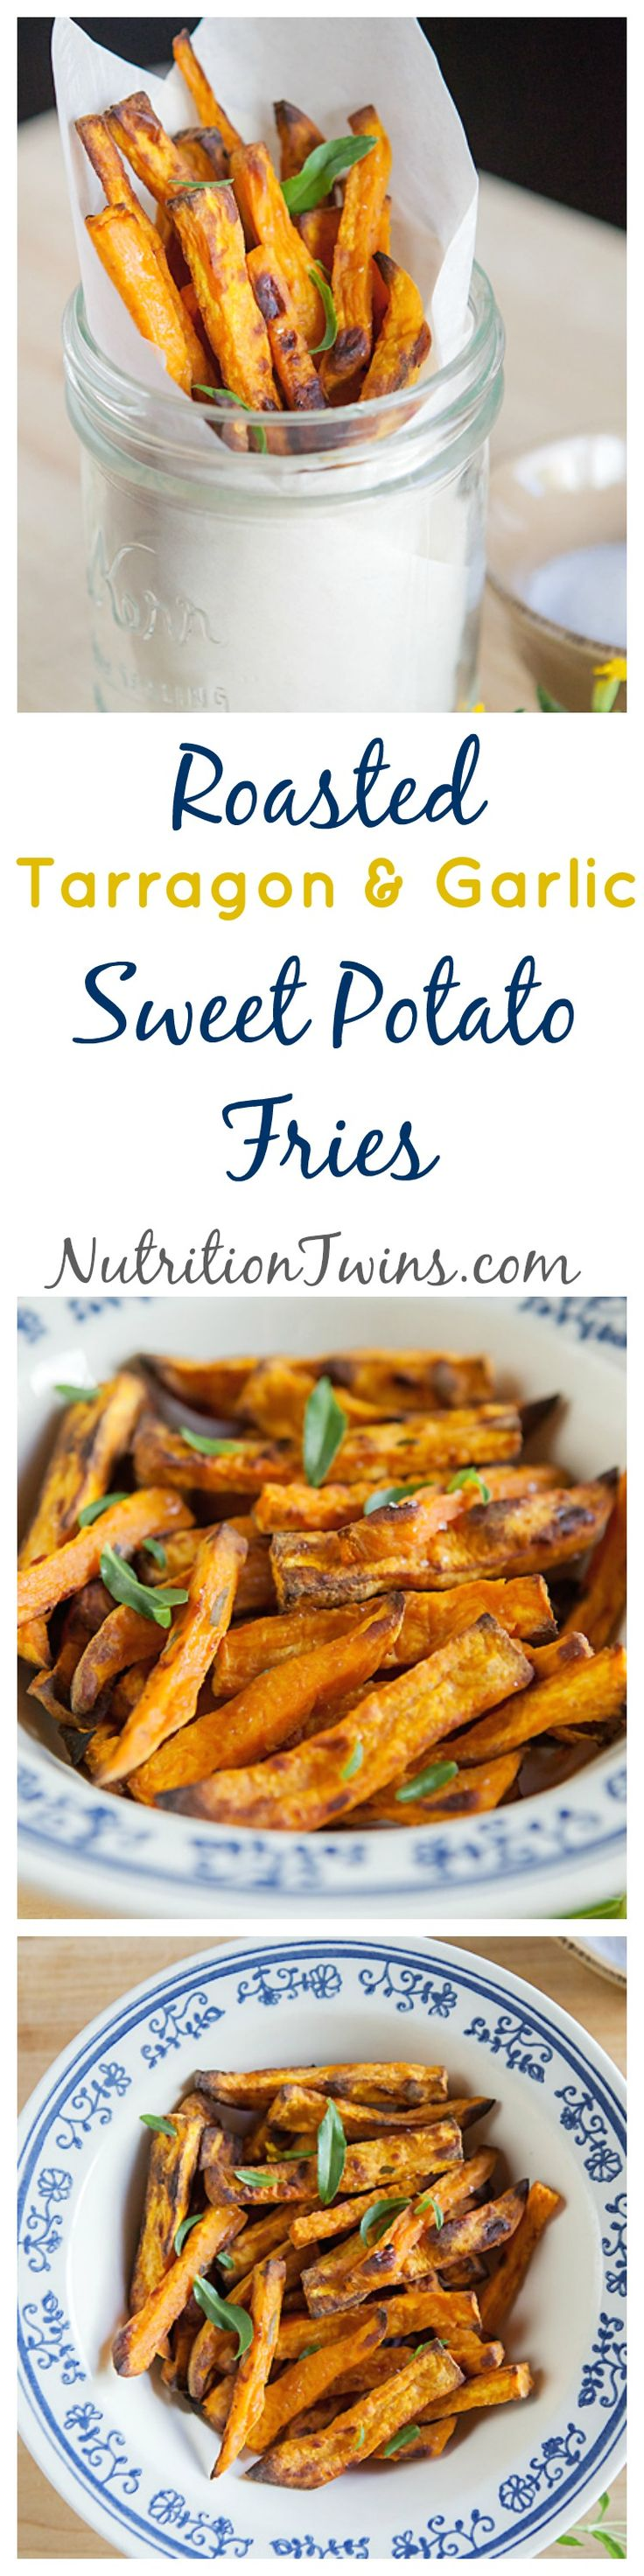 """Roasted Tarragon Garlic Sweet Potato """"Fries"""" 